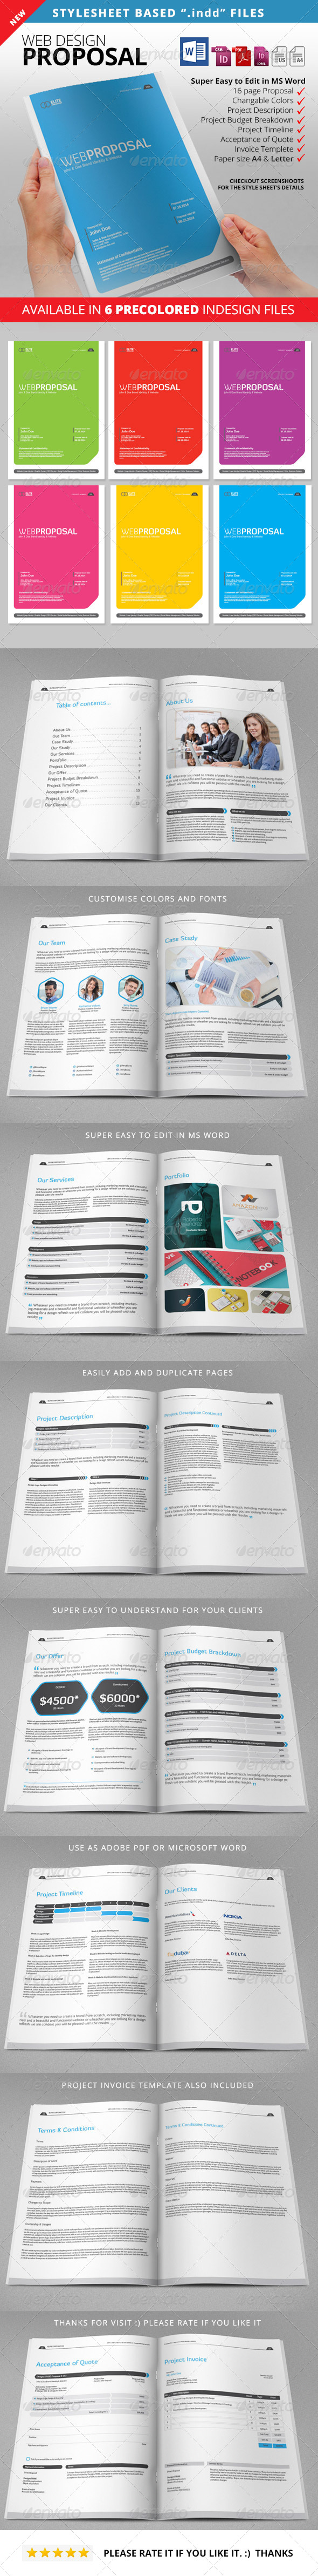 GraphicRiver Proposal Web Proposal 8548734